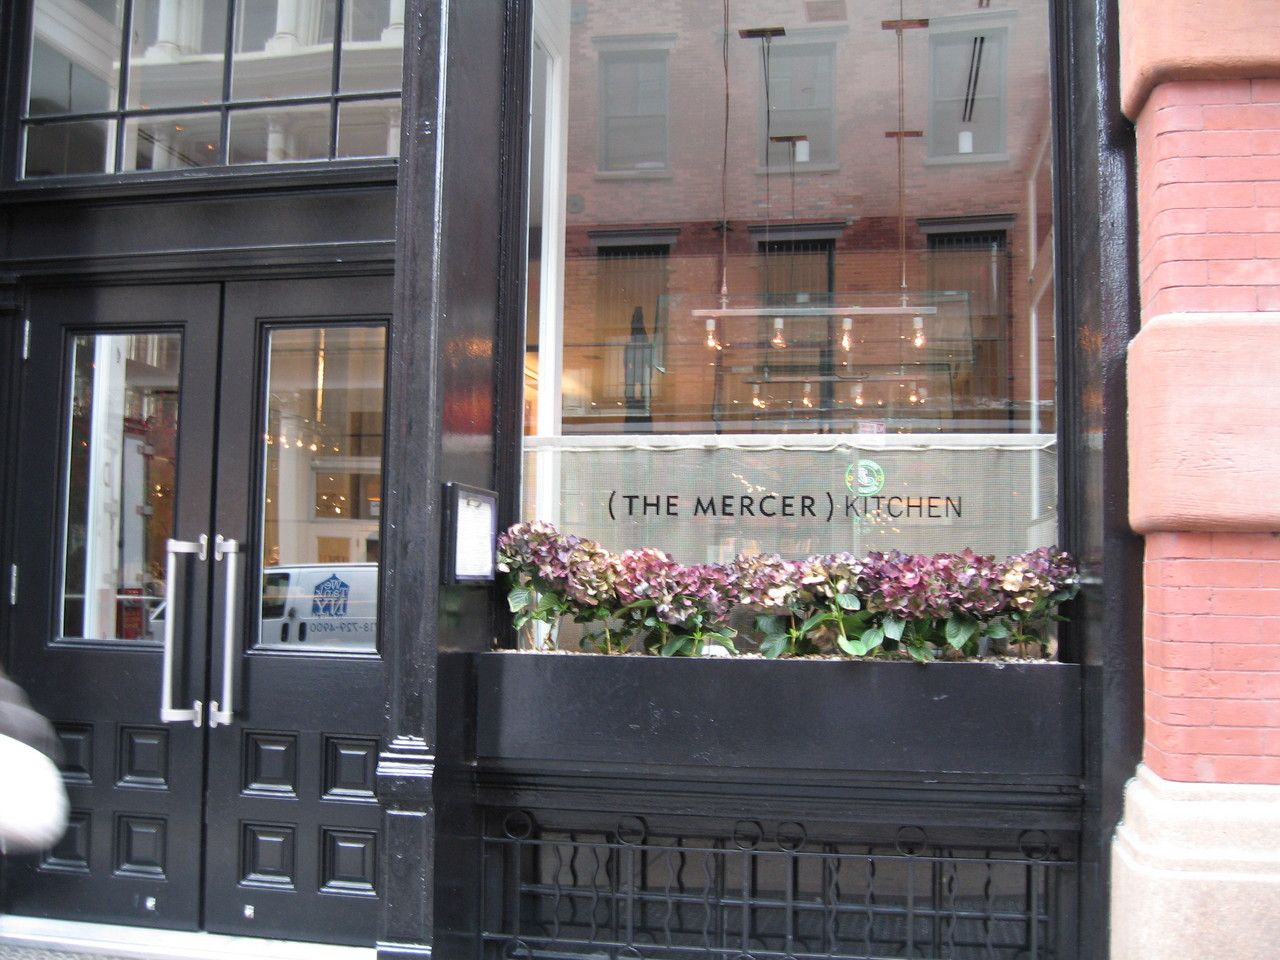 Mercer Kitchen NYC  possible lunch or dinner place for